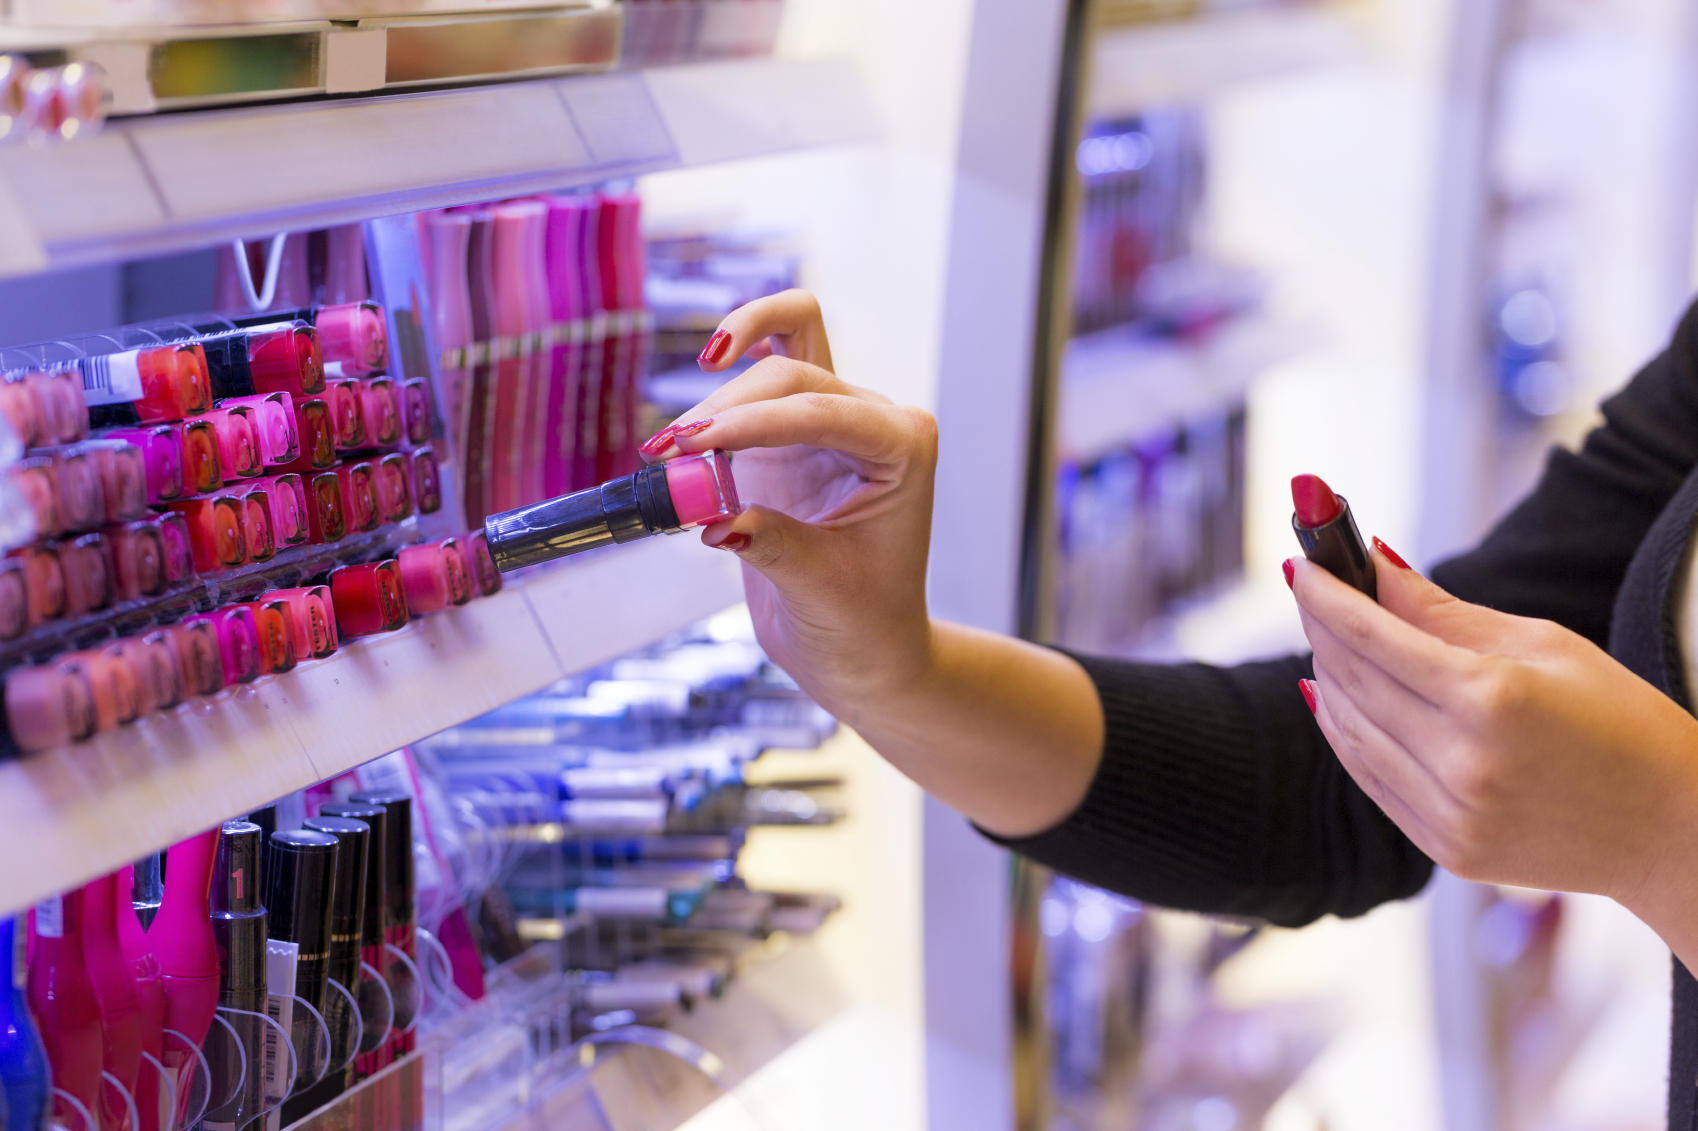 Cosmetics can be counterfeit